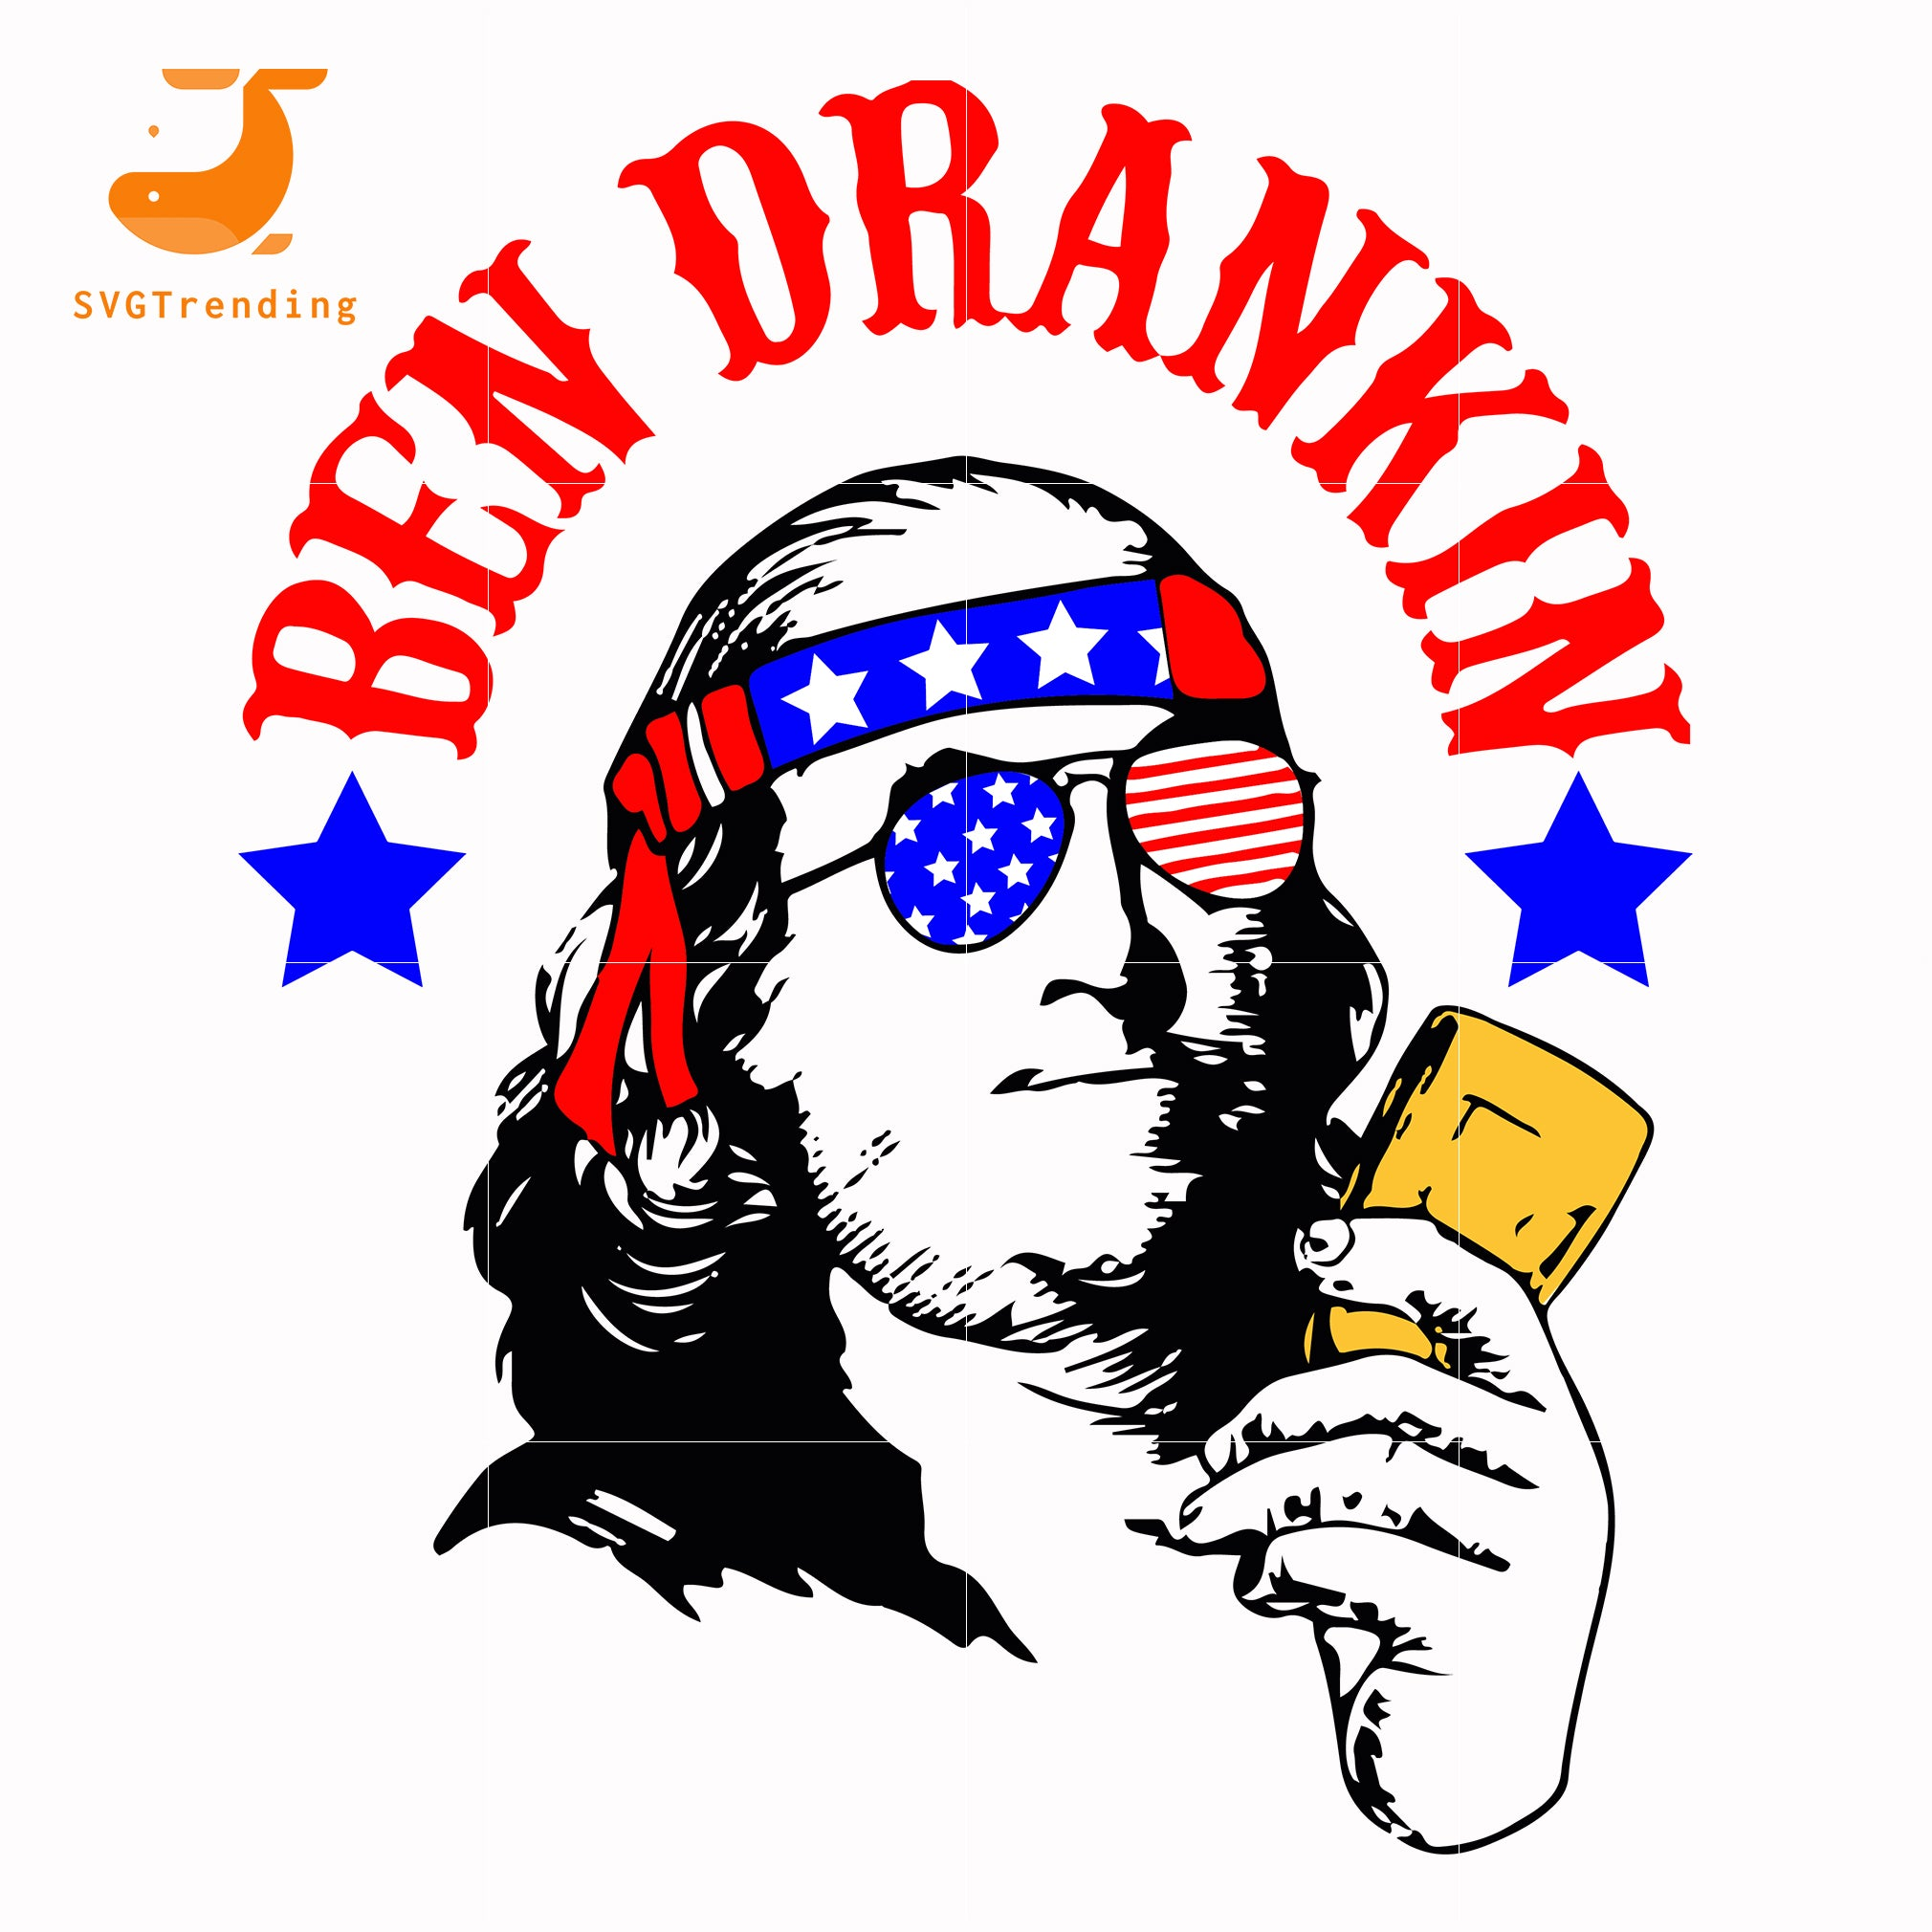 ben drankin american svg, png, dxf, eps, digital file JULY0022